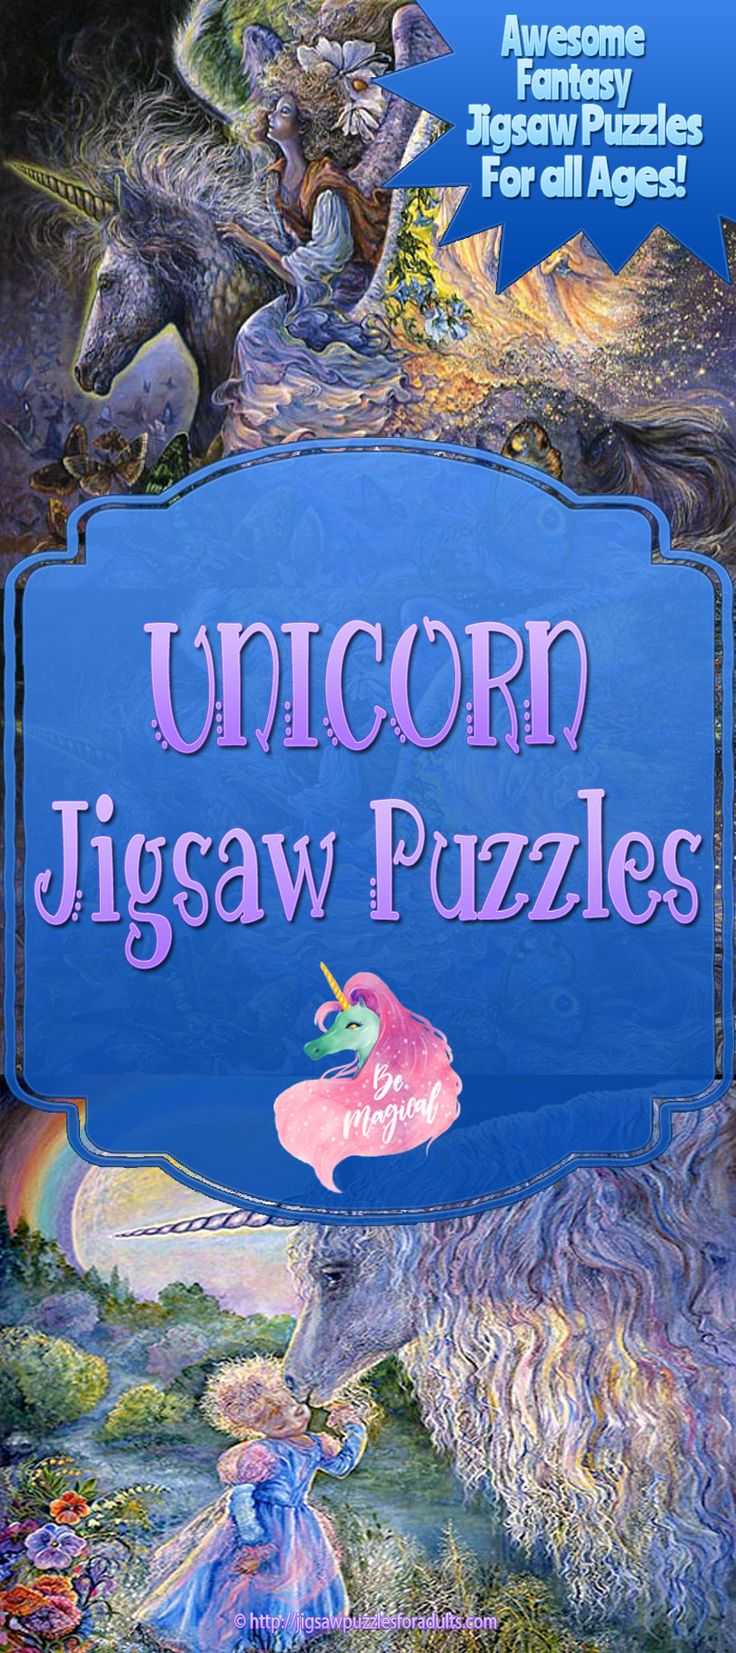 Love these Unicorn Jigsaw Puzzles! You'll find plenty of Beautiful jigsaw Puzzles of Unicorns. These Unicorn Jigsaw Puzzles would make magical gifts for adults that have a passion for fantasy artwork and puzzles!